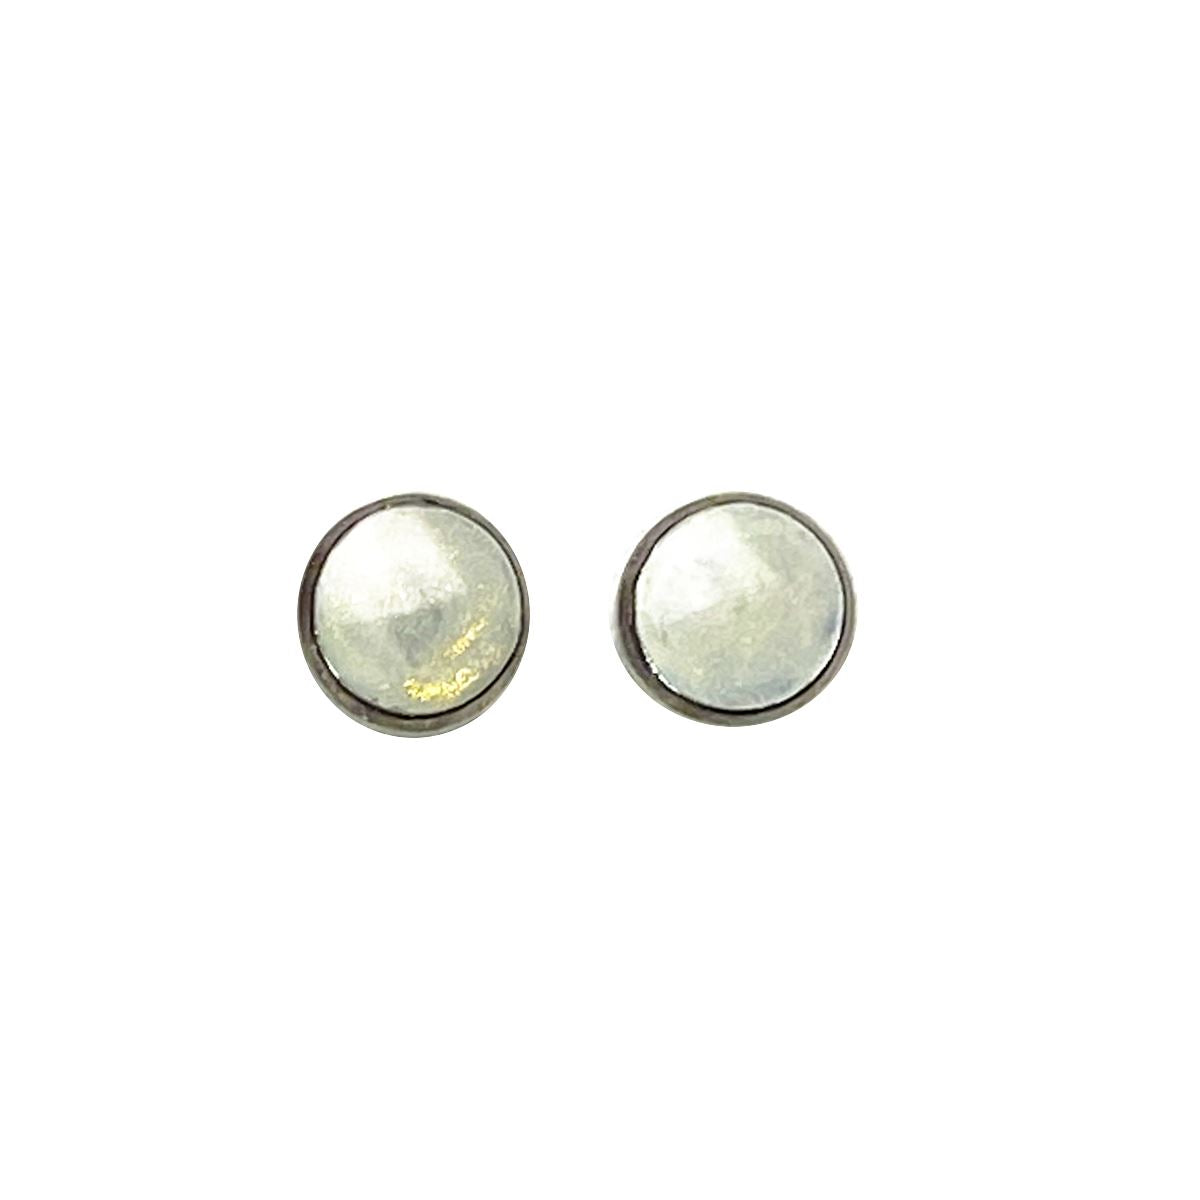 Color Study- white 8mm stud earrings Deanna Dot Store